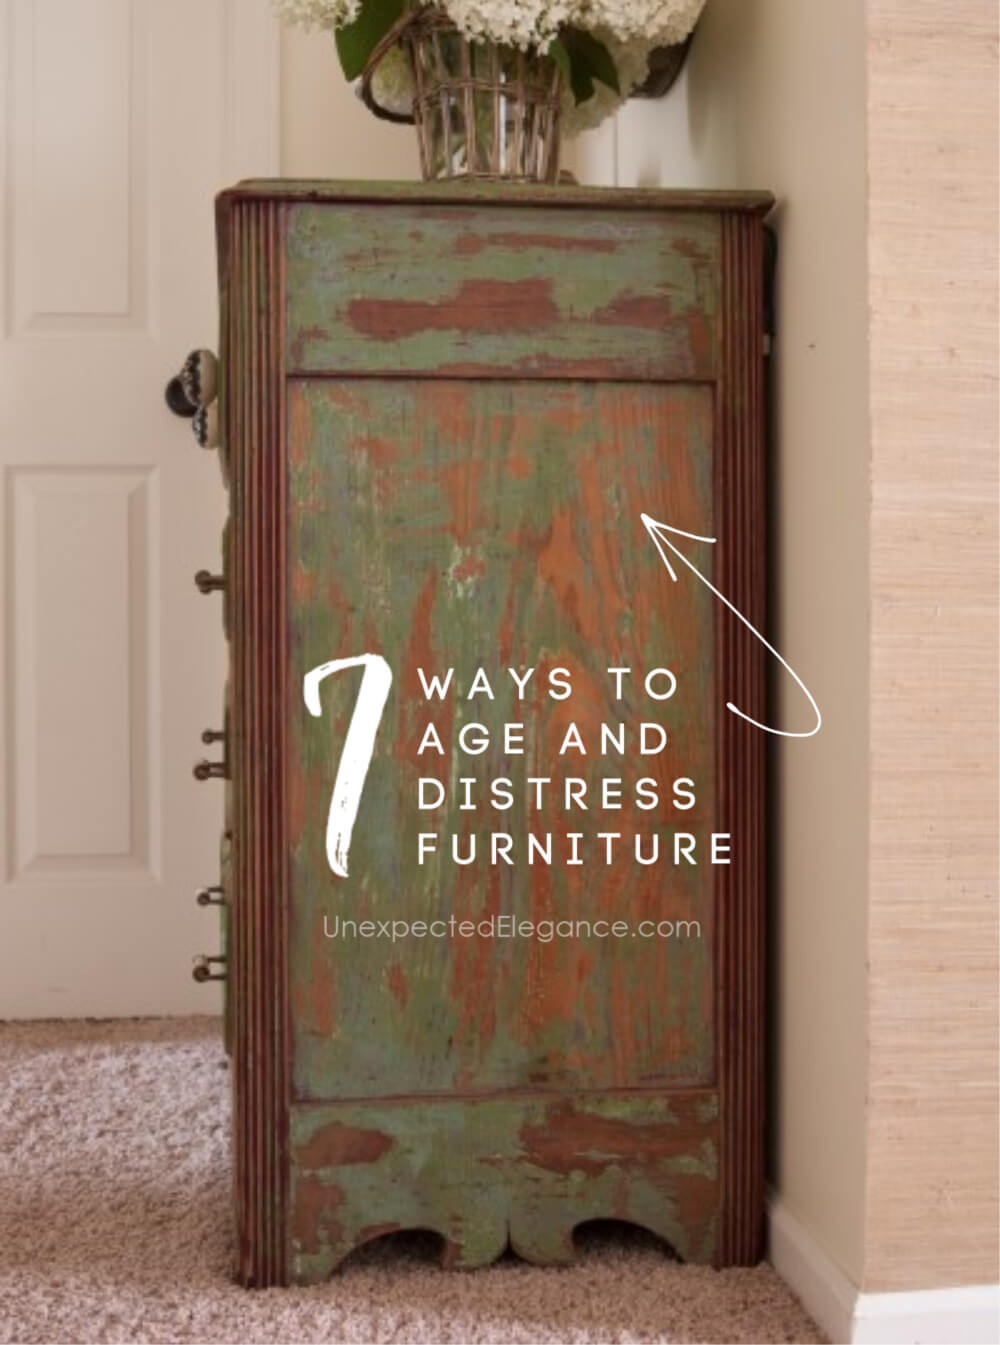 7 ways to age and distress furniture